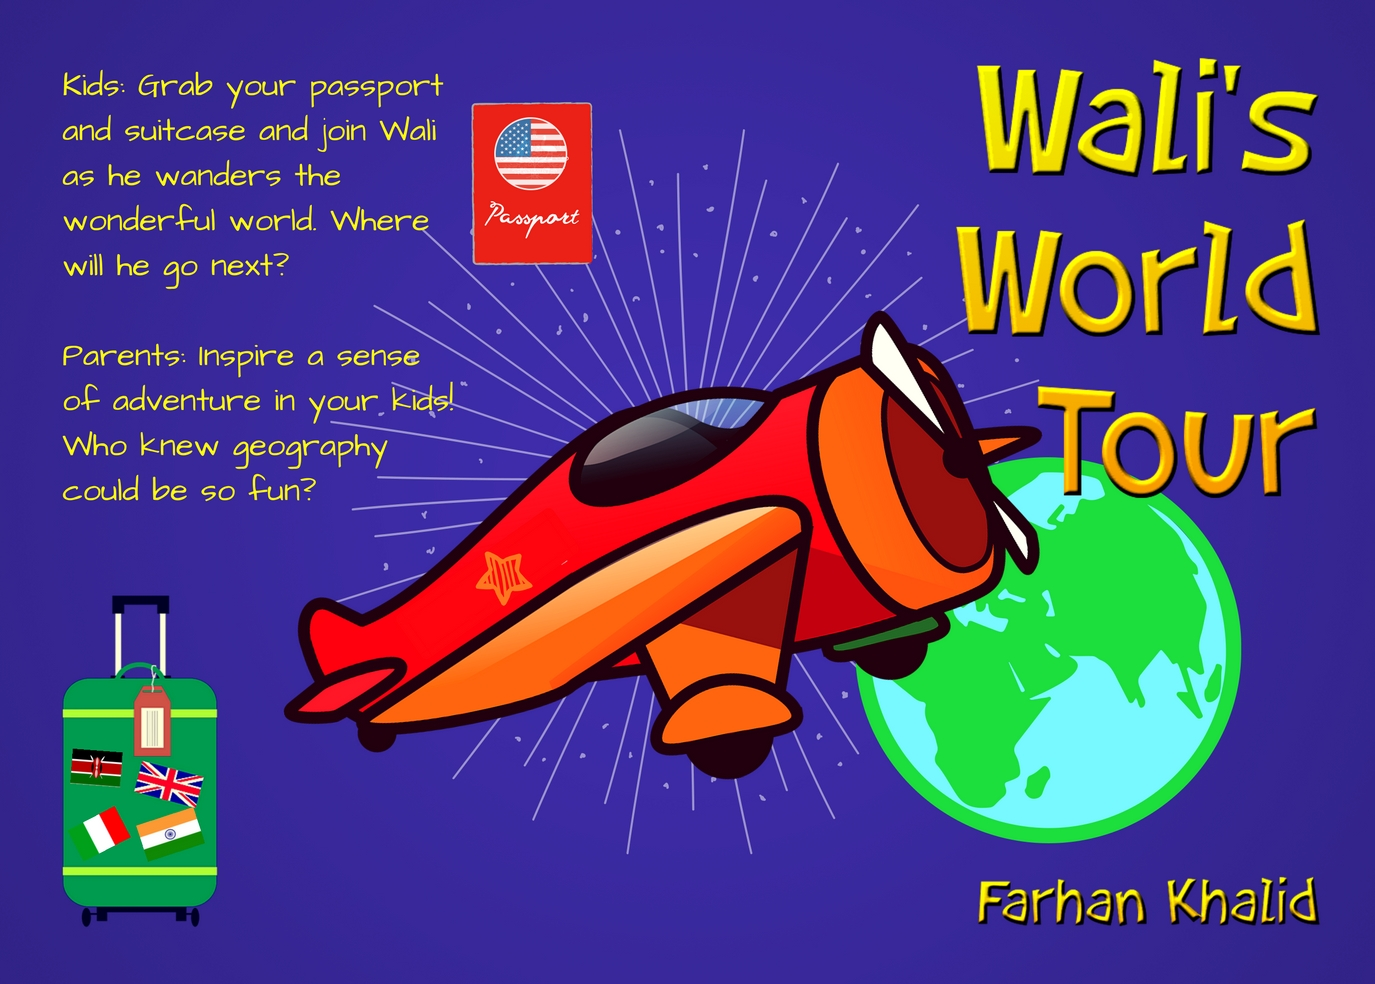 Wali's World Tour